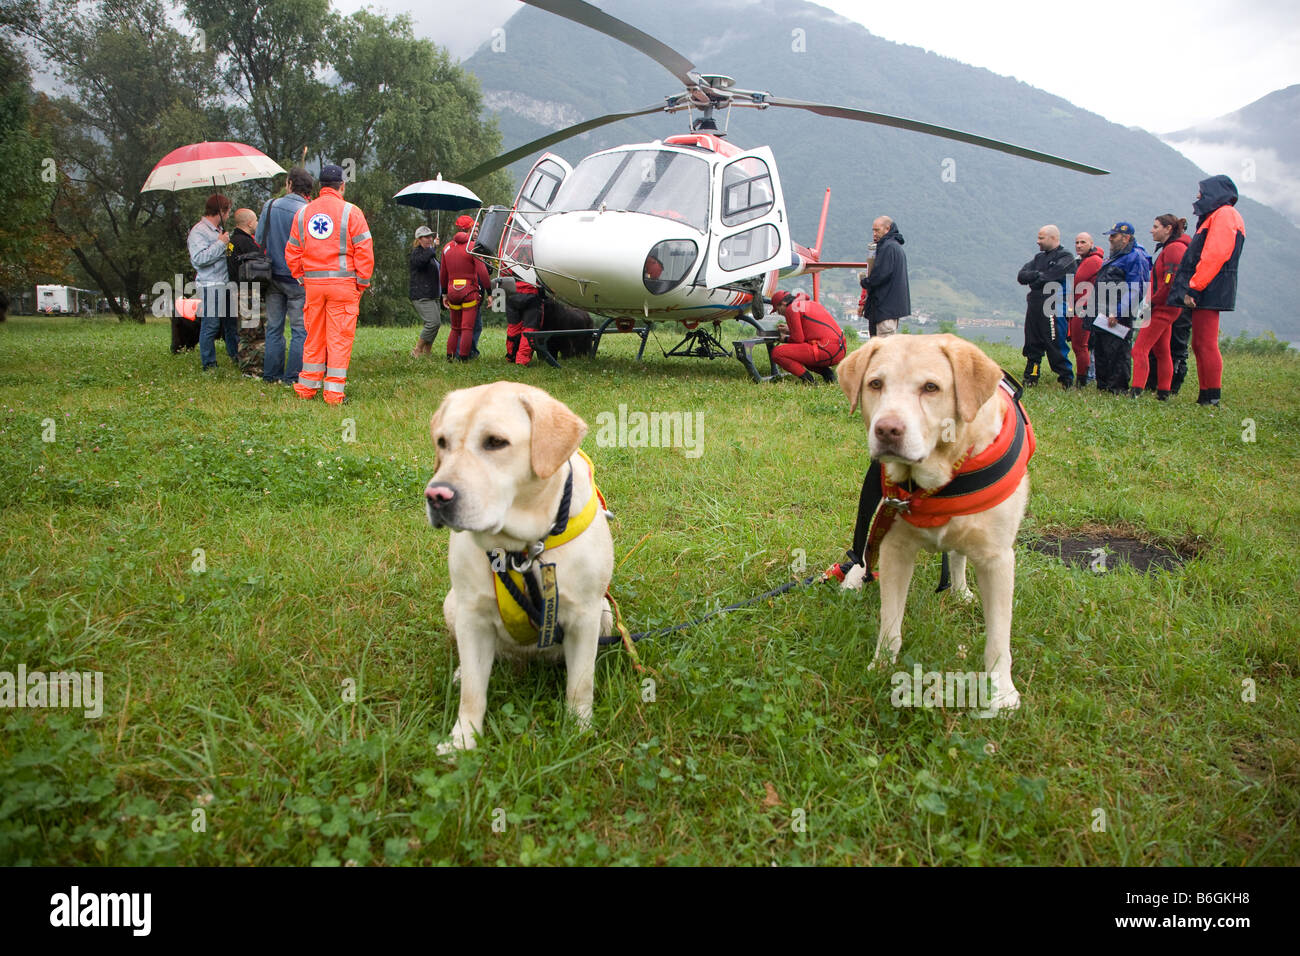 Two Labradors training to become rescue dogs They jump from the helicopter into water to rescue a drowning person - Stock Image